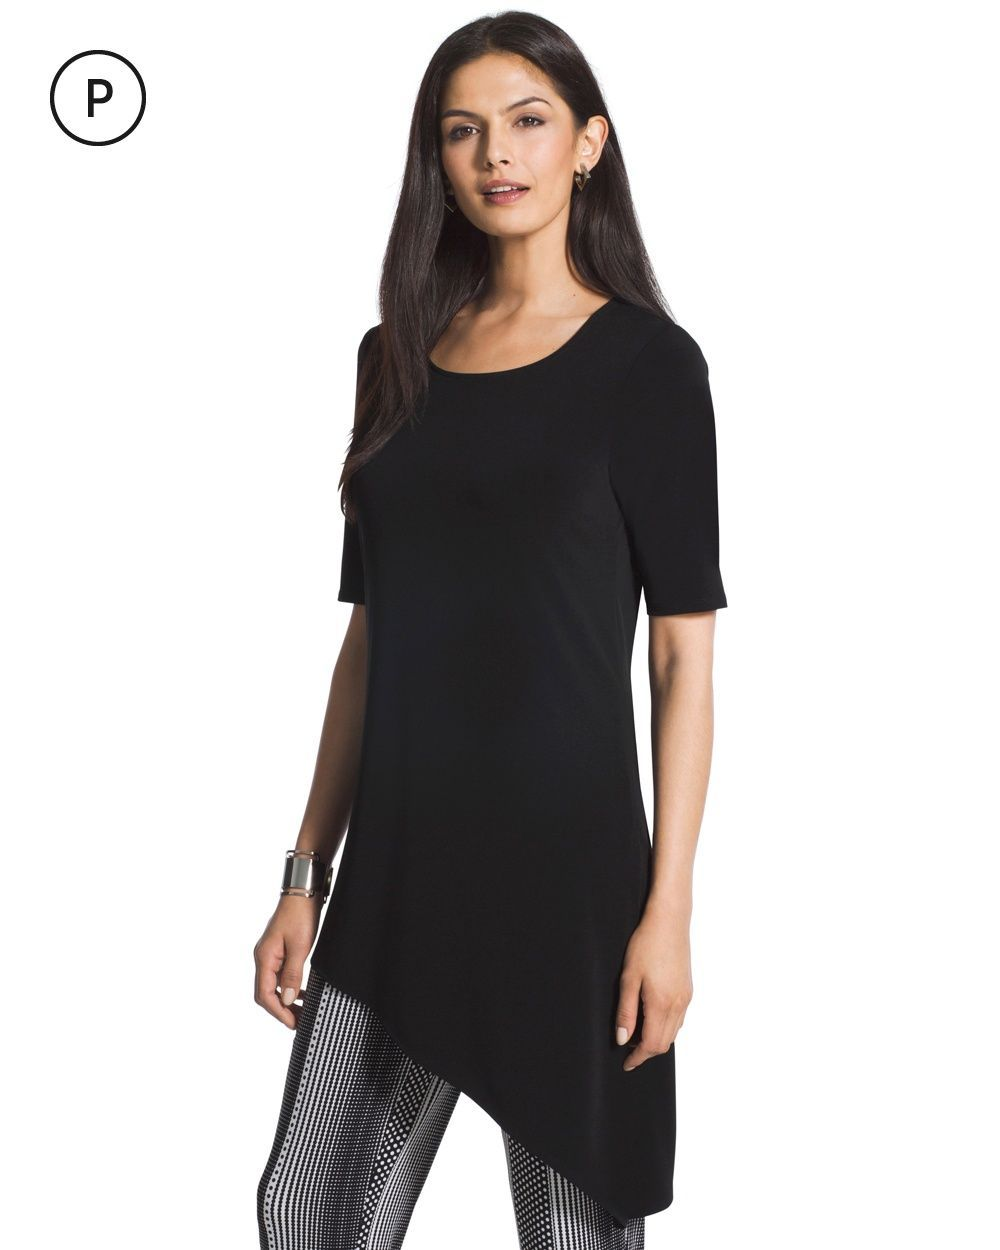 869408e3515 Chico's Women's Petite Knit Kit Asymmetrical Black Top | Products ...